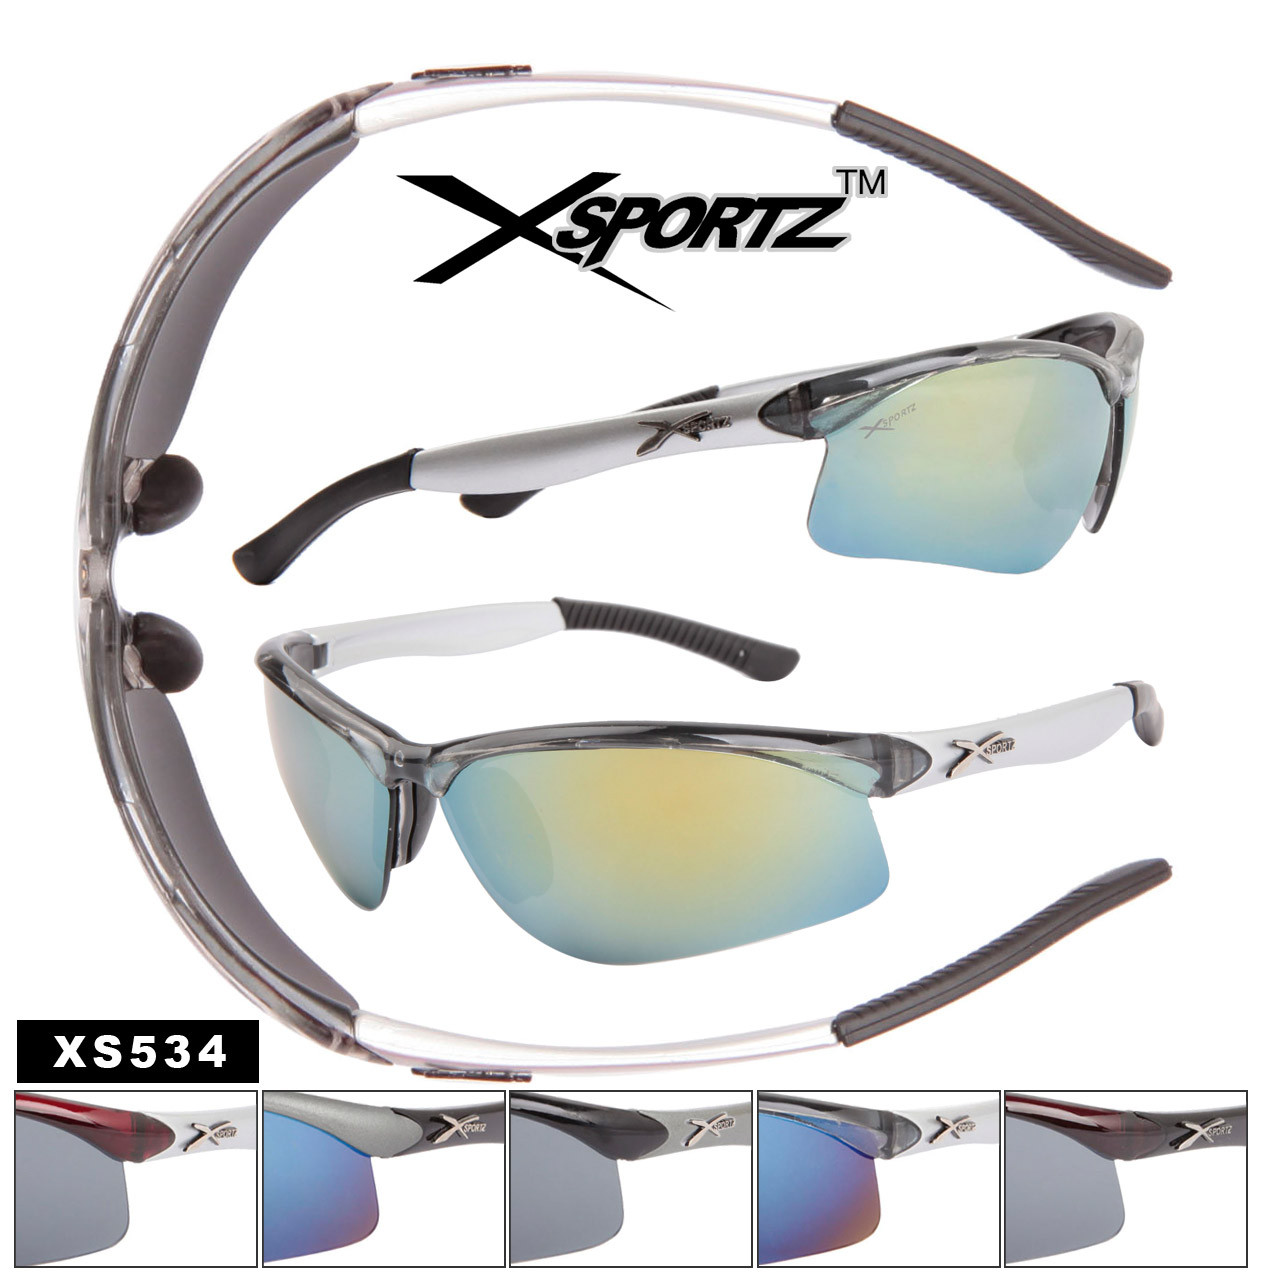 Xsportz Wrap Around Sports Sunglasses XS534 (Assorted Colors) (12 pcs.)